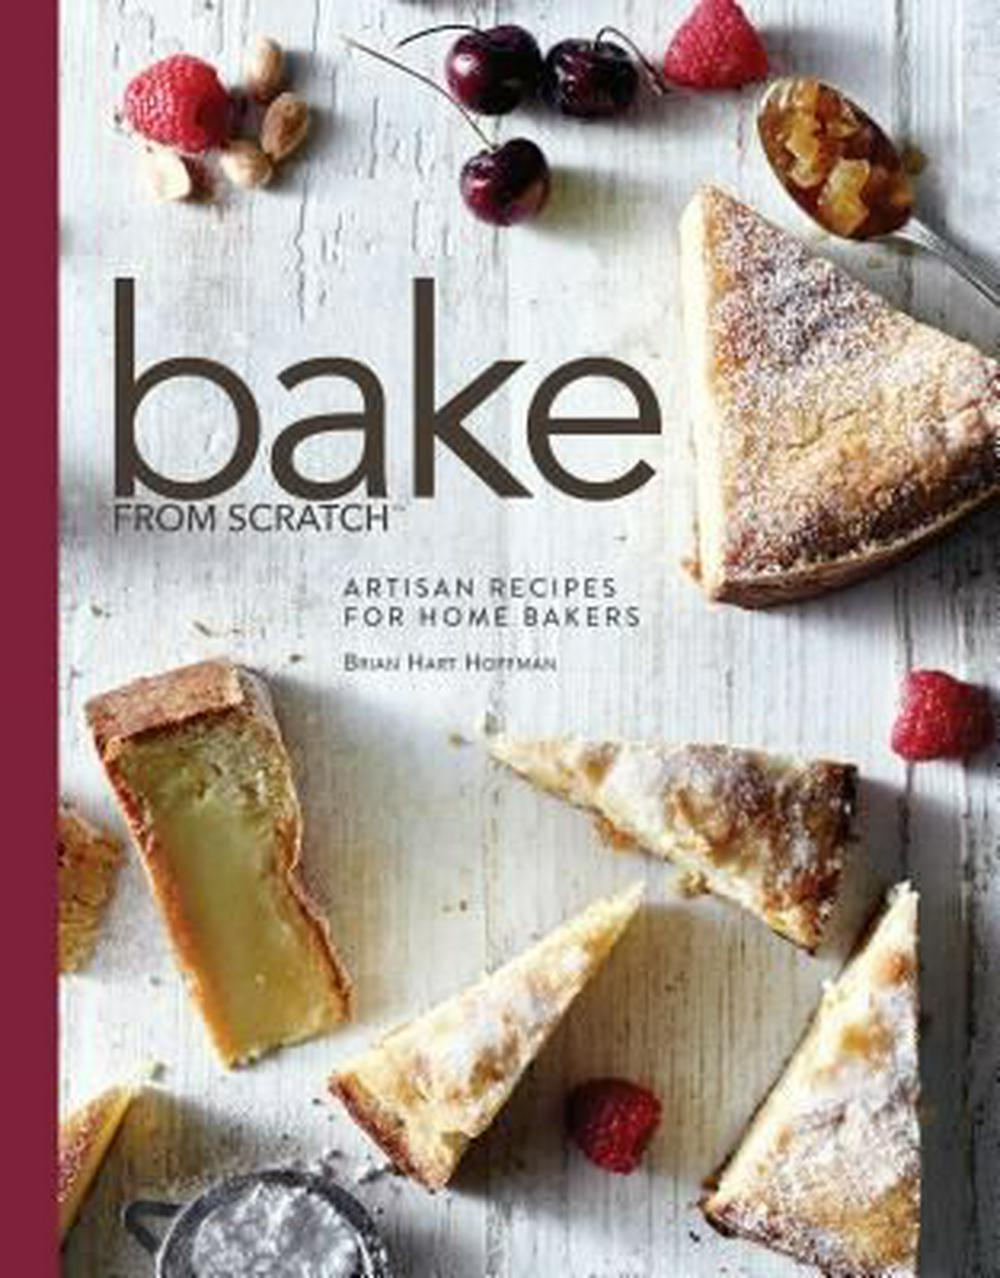 Bake from Scratch by Brian Hart Hoffman, ISBN: 9781940772363